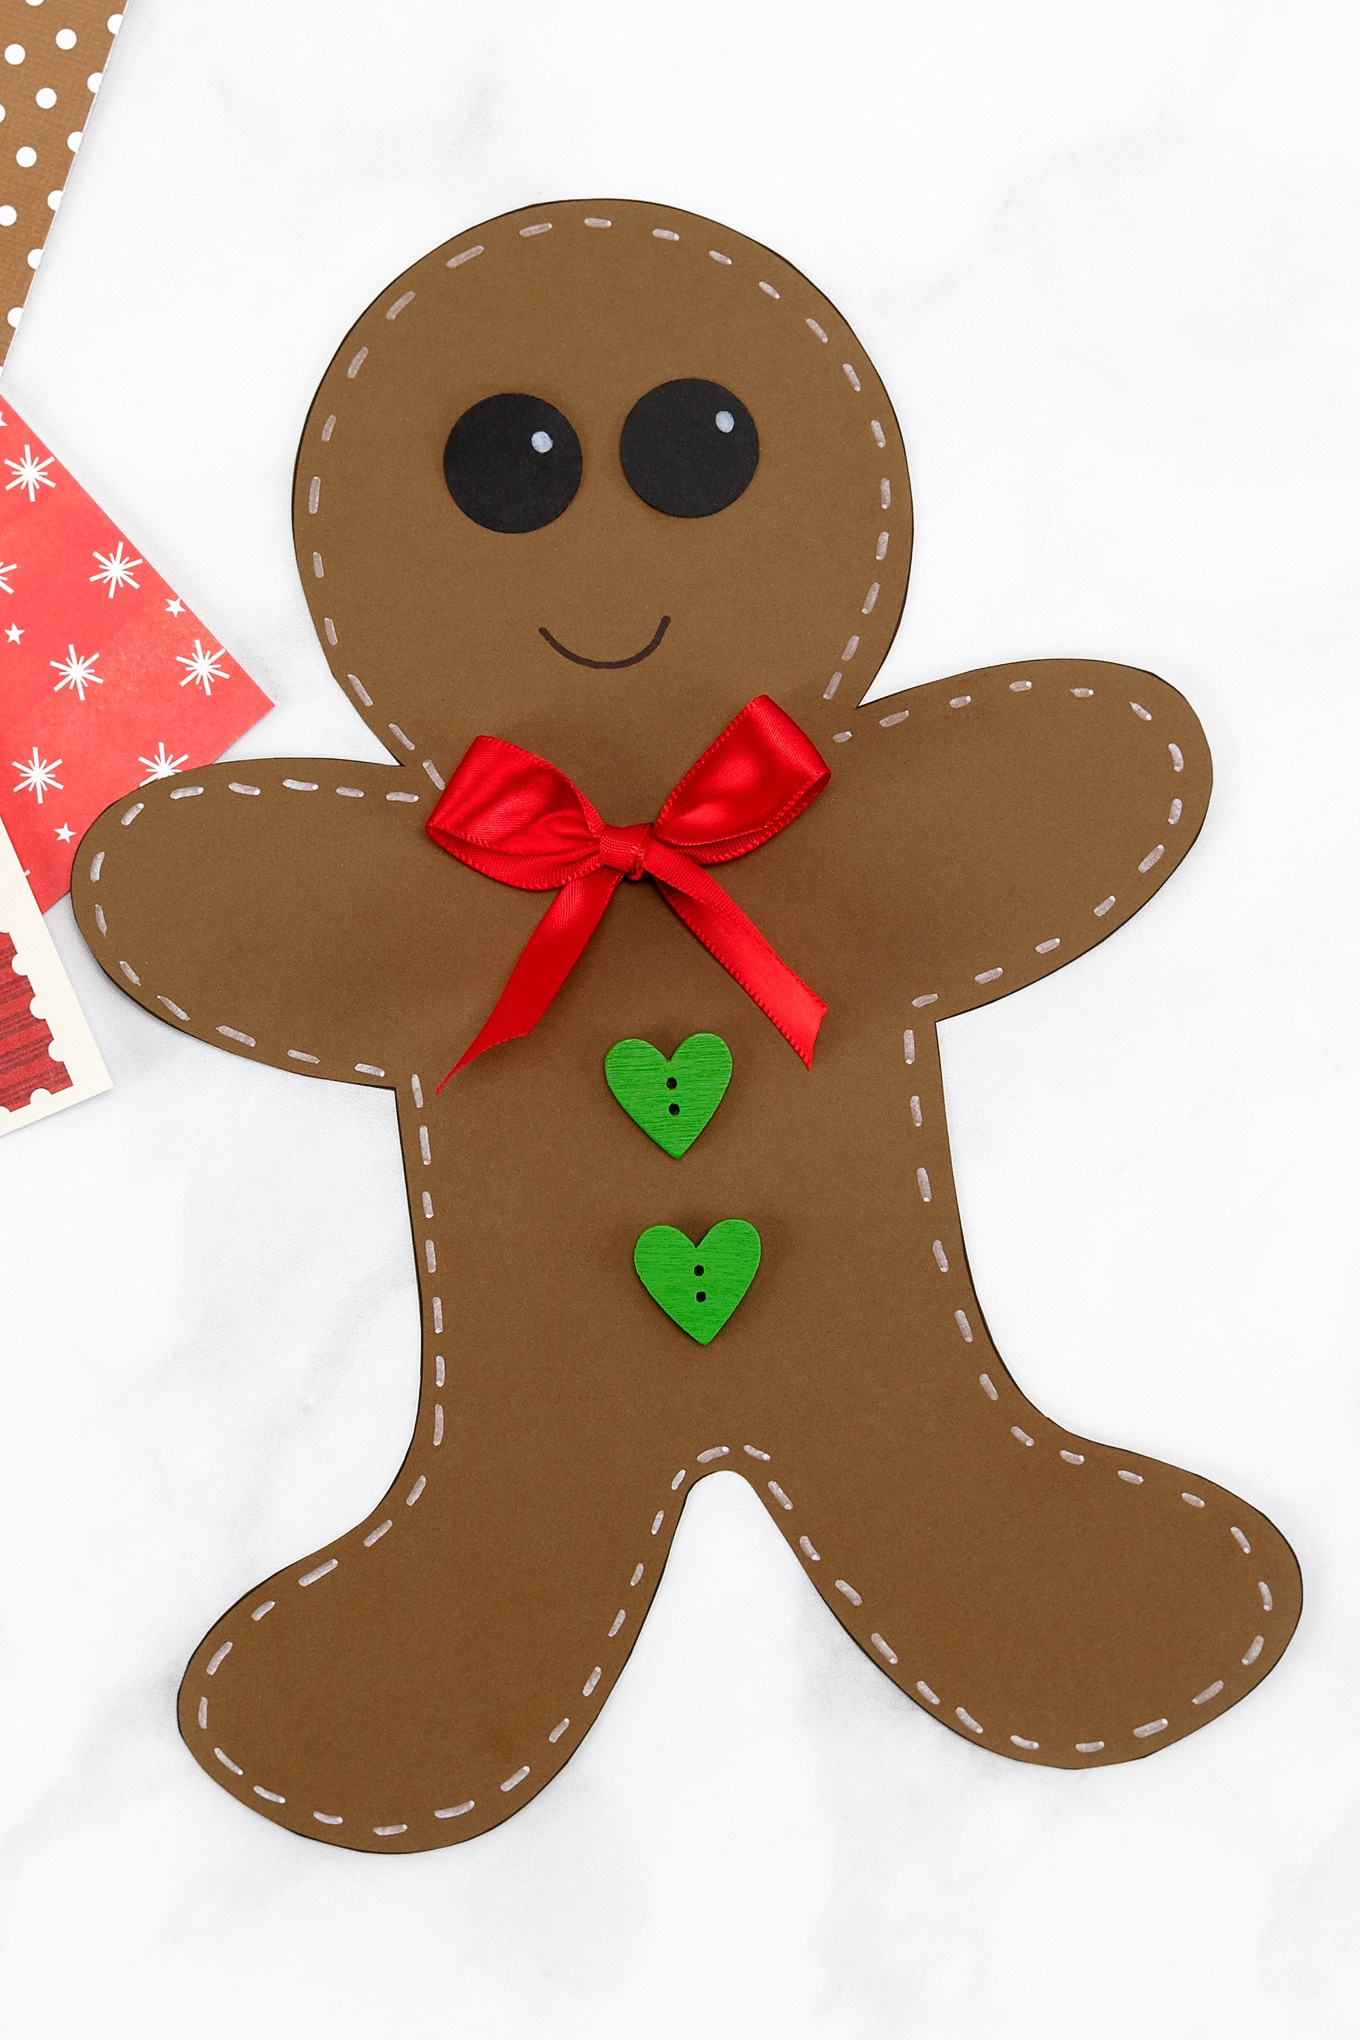 Download our free 3-page printable Gingerbread Man Template to decorate, color, or use in crafts. Perfect for kids of all ages! #gingerbreadmantemplate #christmas #kidscrafts via @firefliesandmudpies